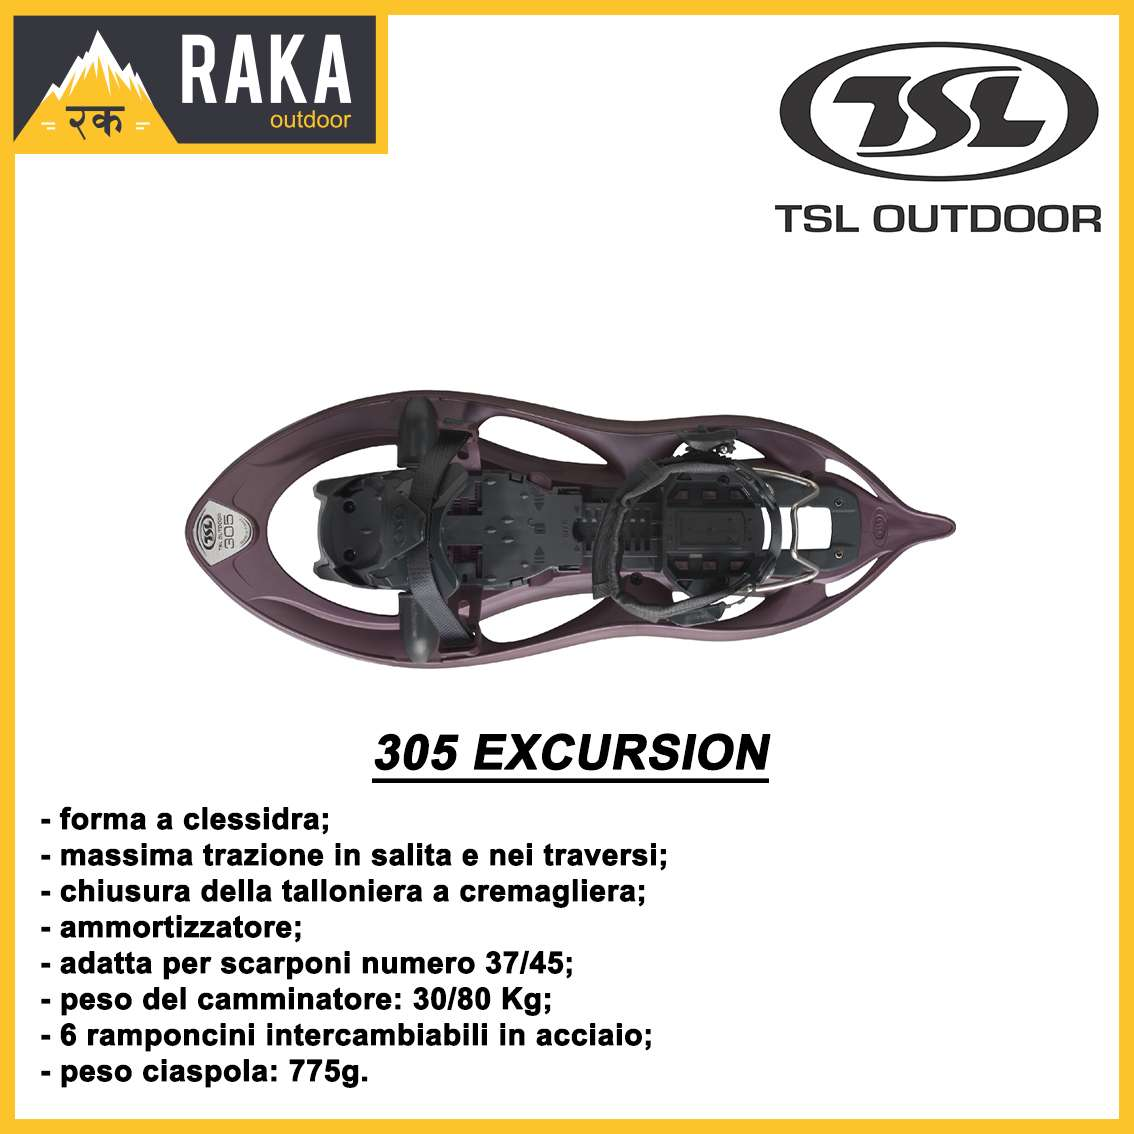 TSL OUTDOOR 305 EXCURSION